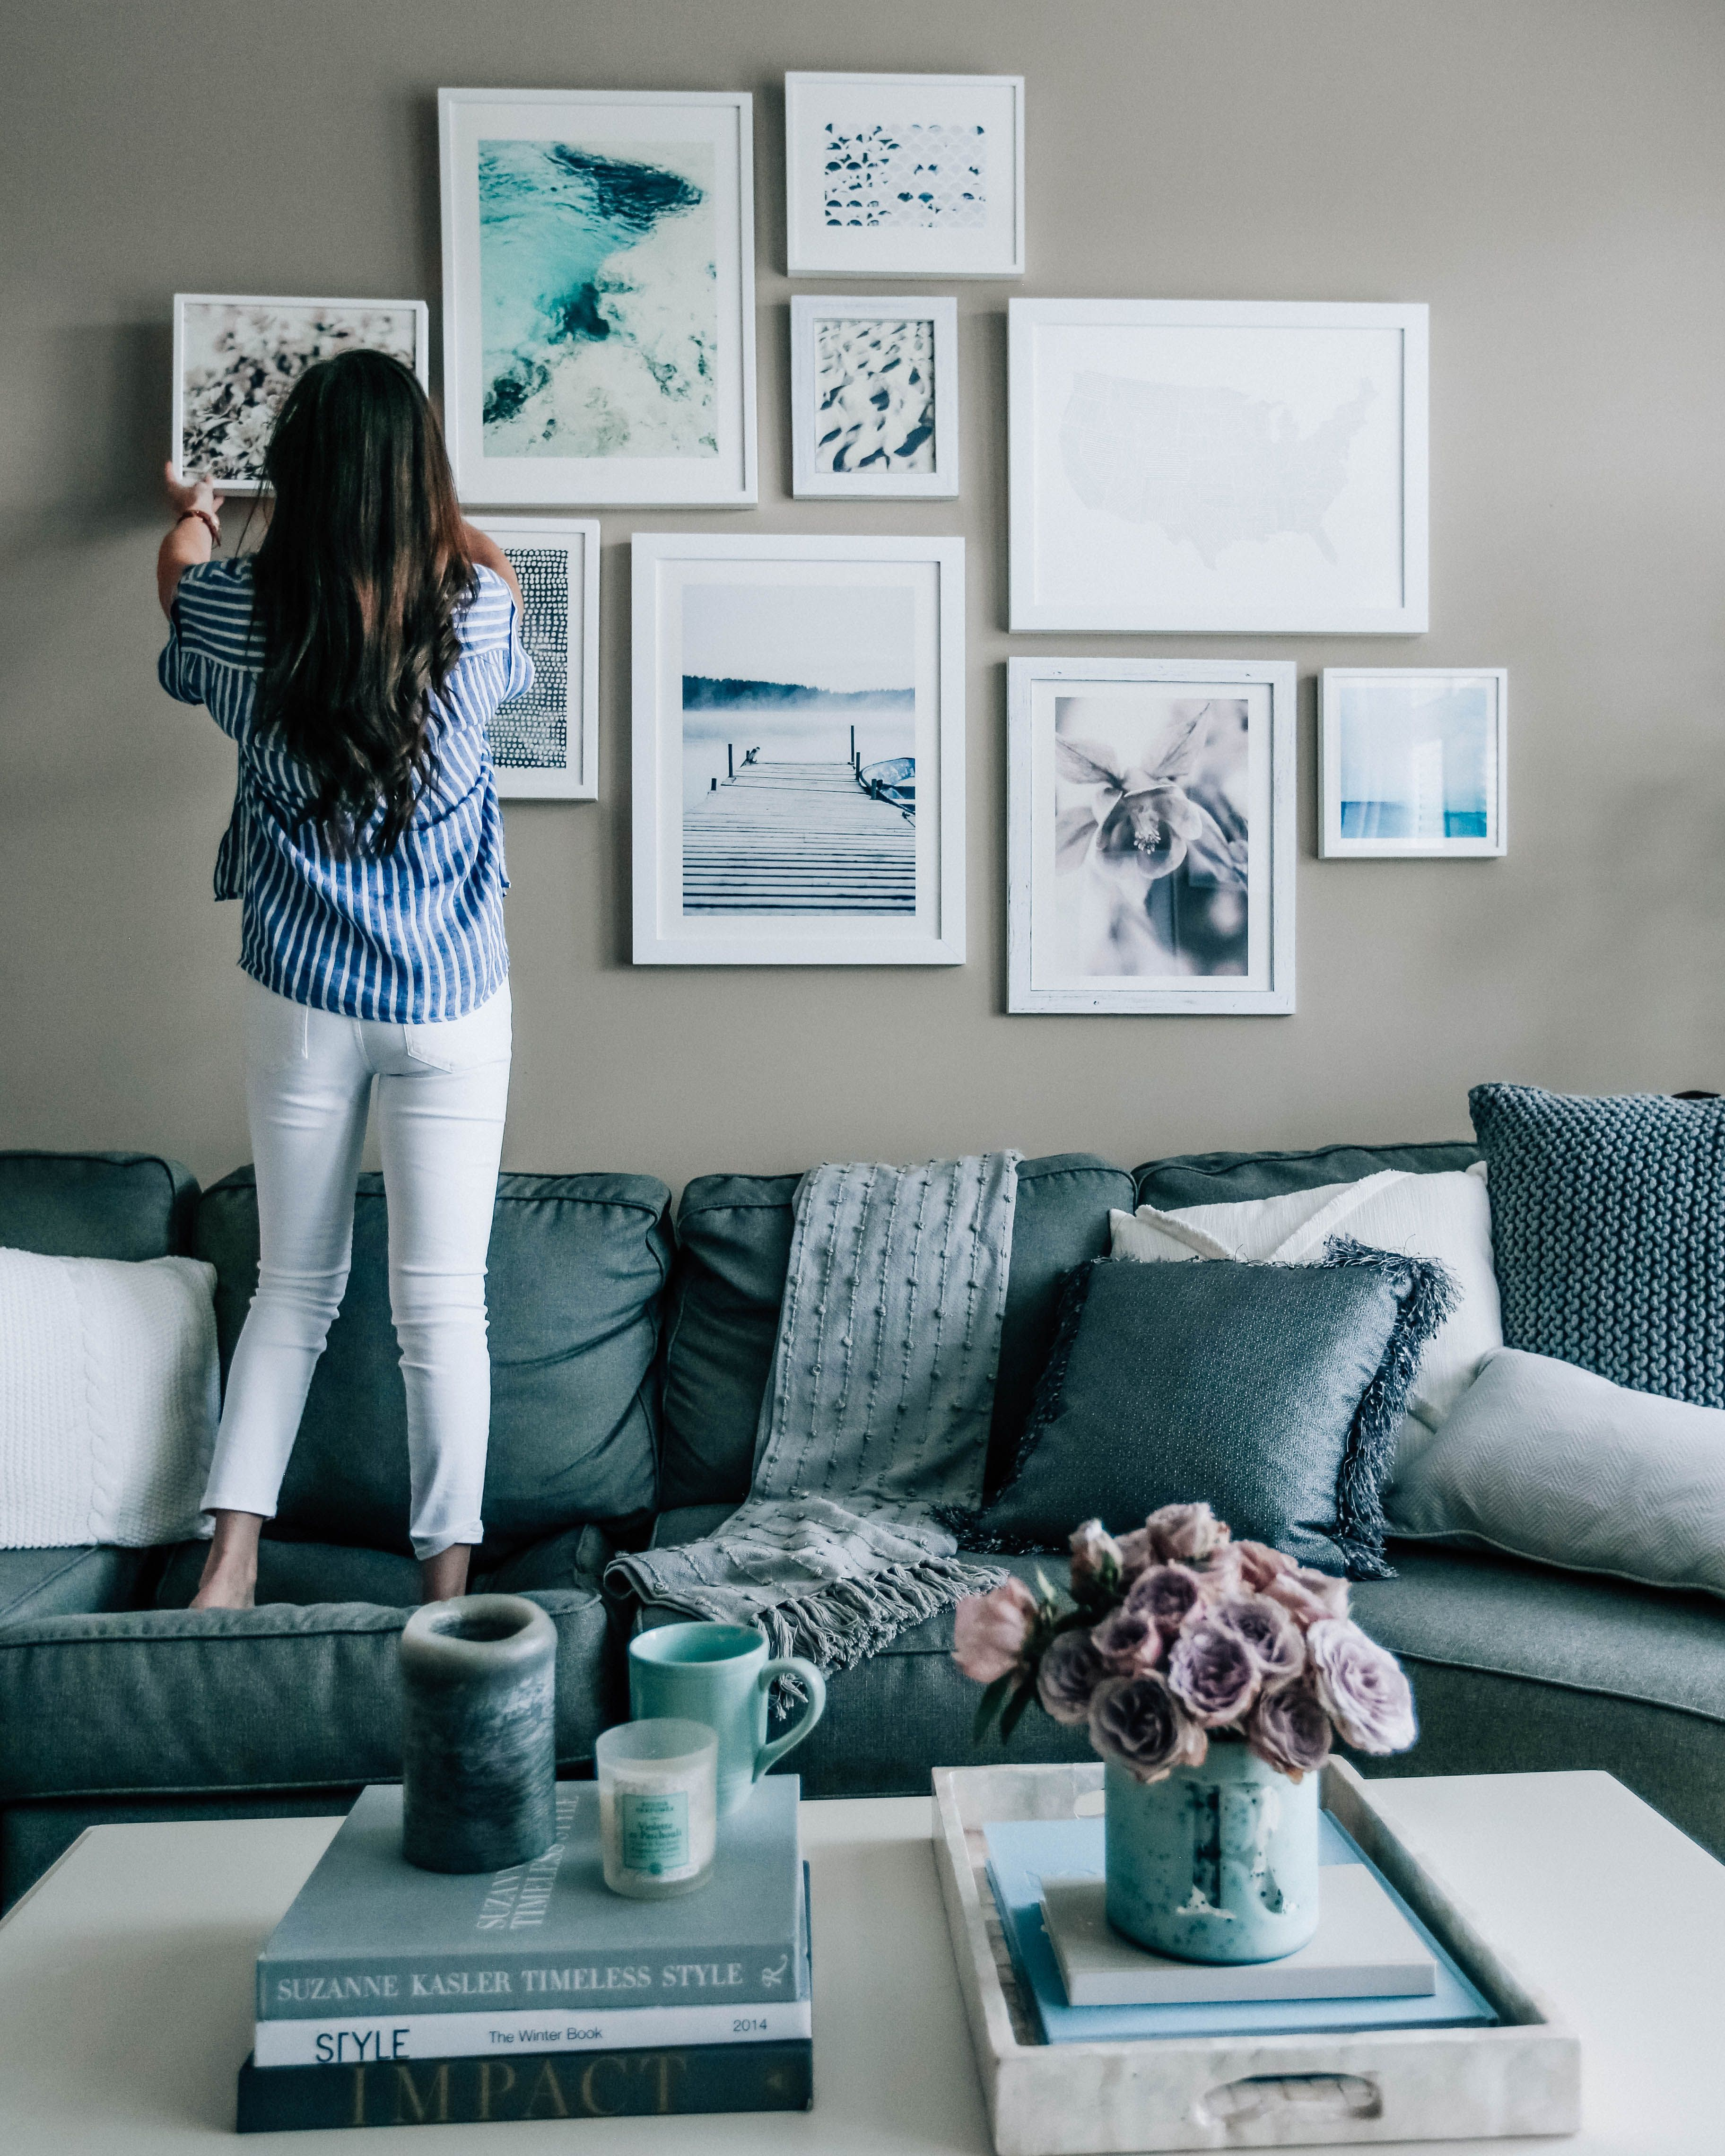 Living Room Decor Turquoise Ergonomic Furniture Home Spring Refresh Part 2 Style Pinterest Blue Grey Pretty In The Pines Lifestyle Blog Gallery Wall